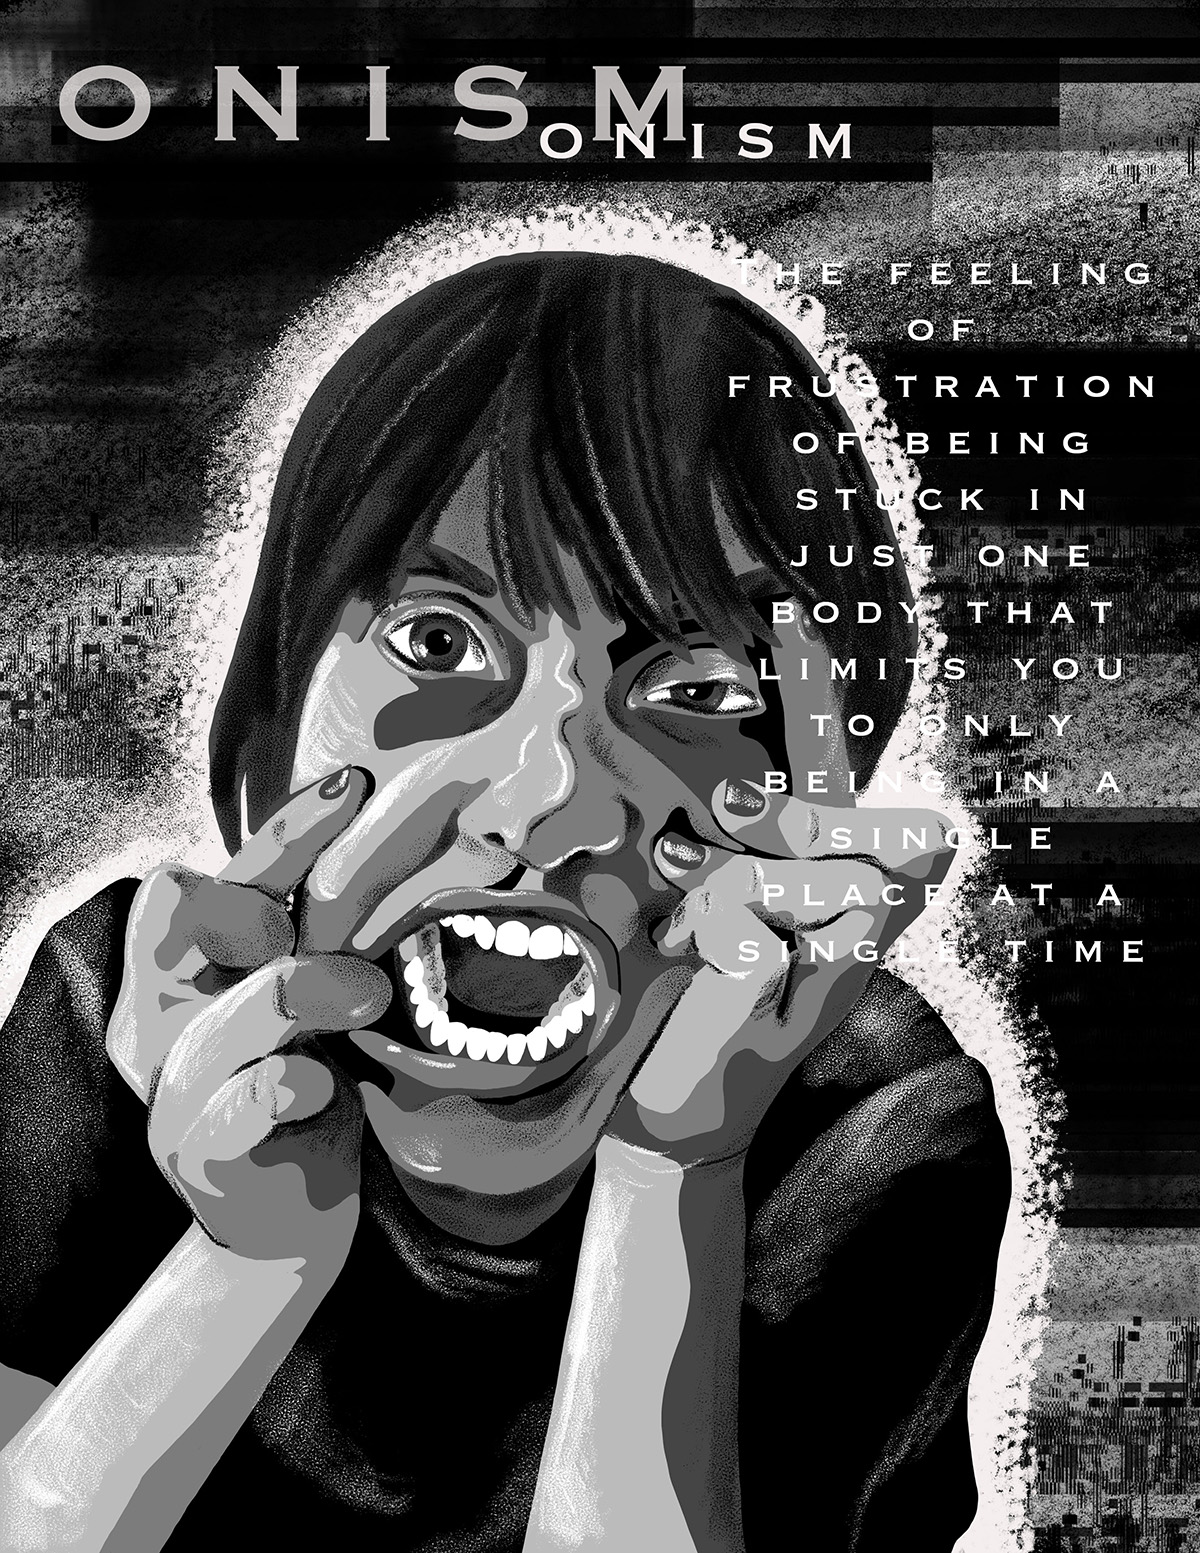 A black and white illustration of a person yelling and touching their face.